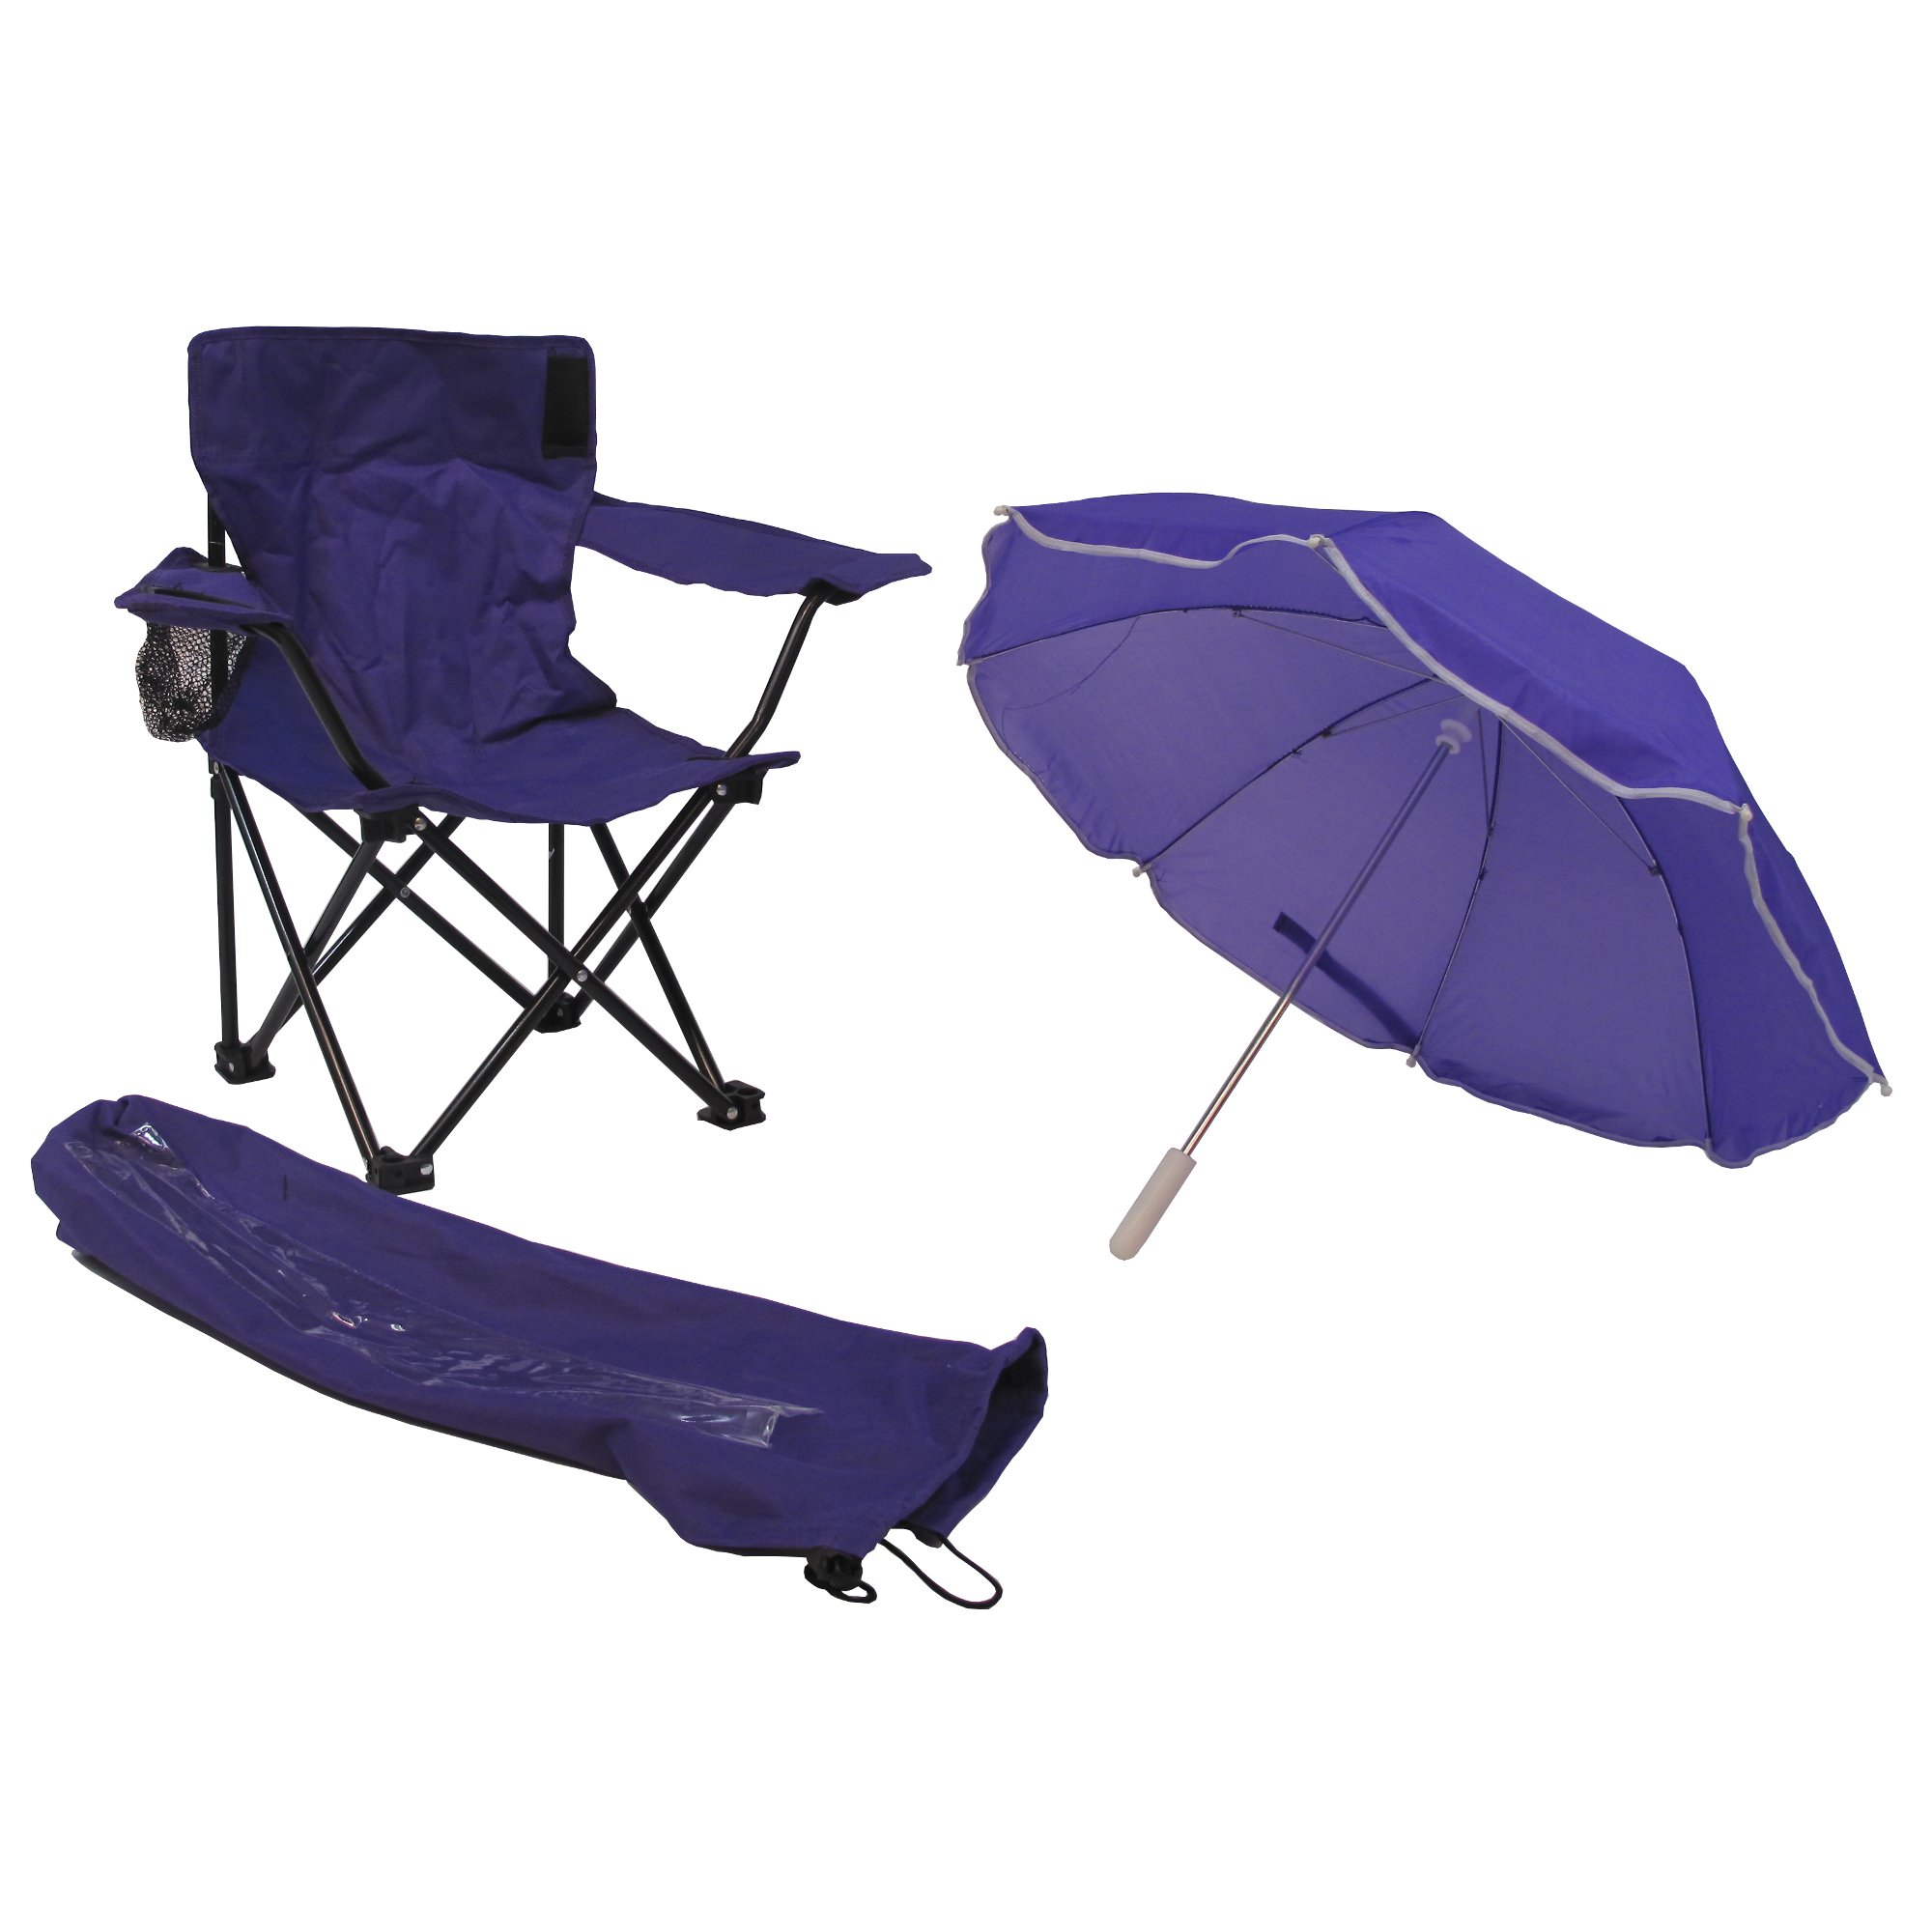 Redmon Beach Baby All-Season Umbrella Chair with Matching Shoulder Bag, Purple